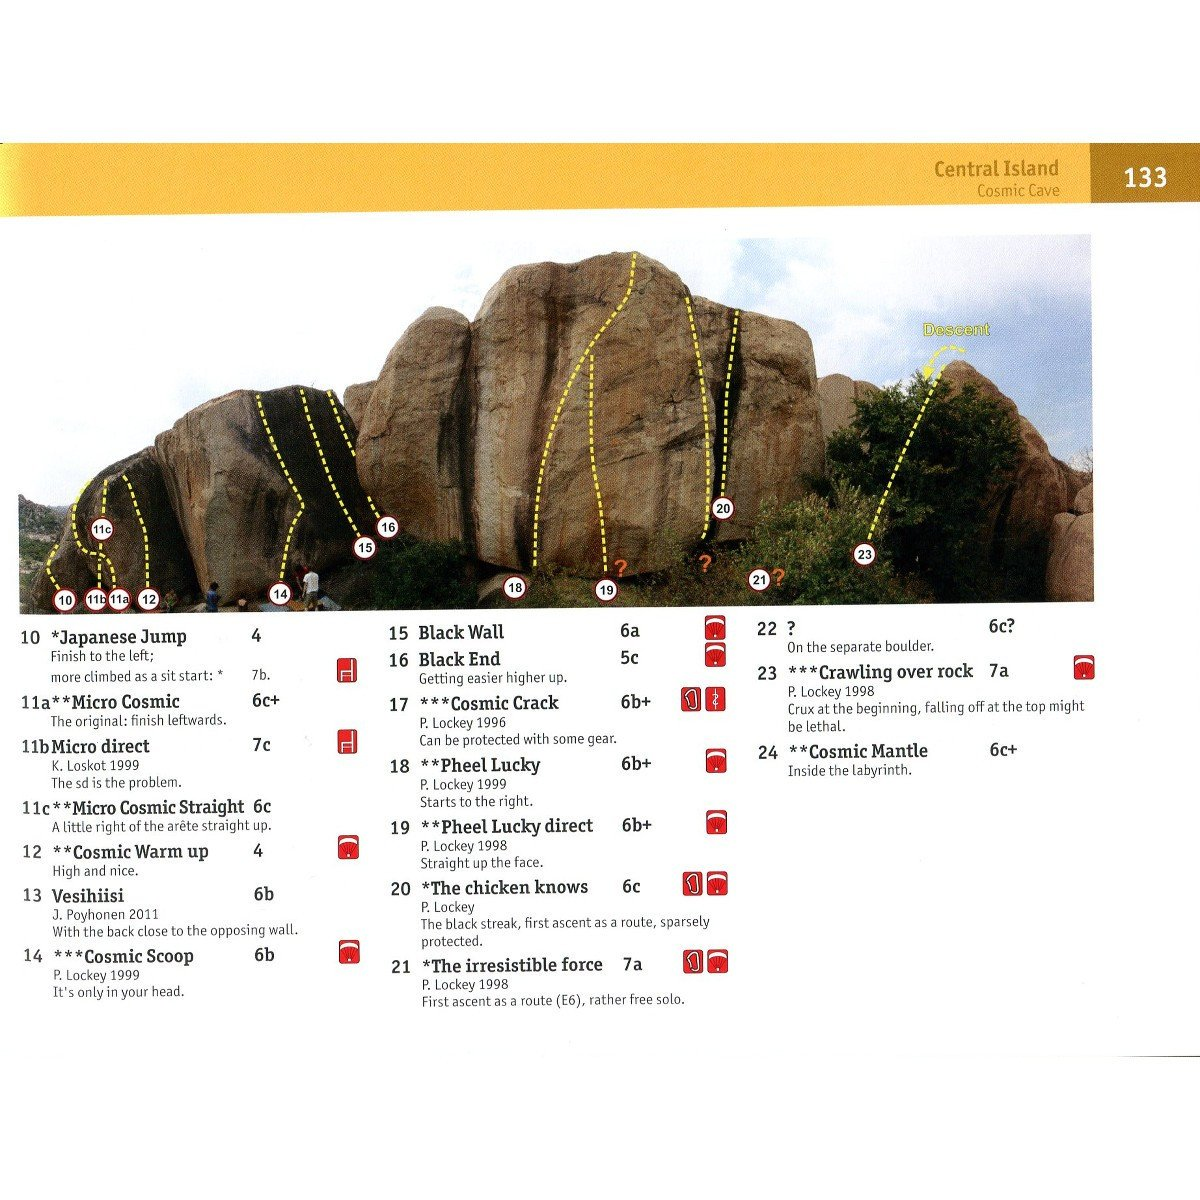 Golden Boulders: Hampi Bouldering guide, inside page examples showing topos